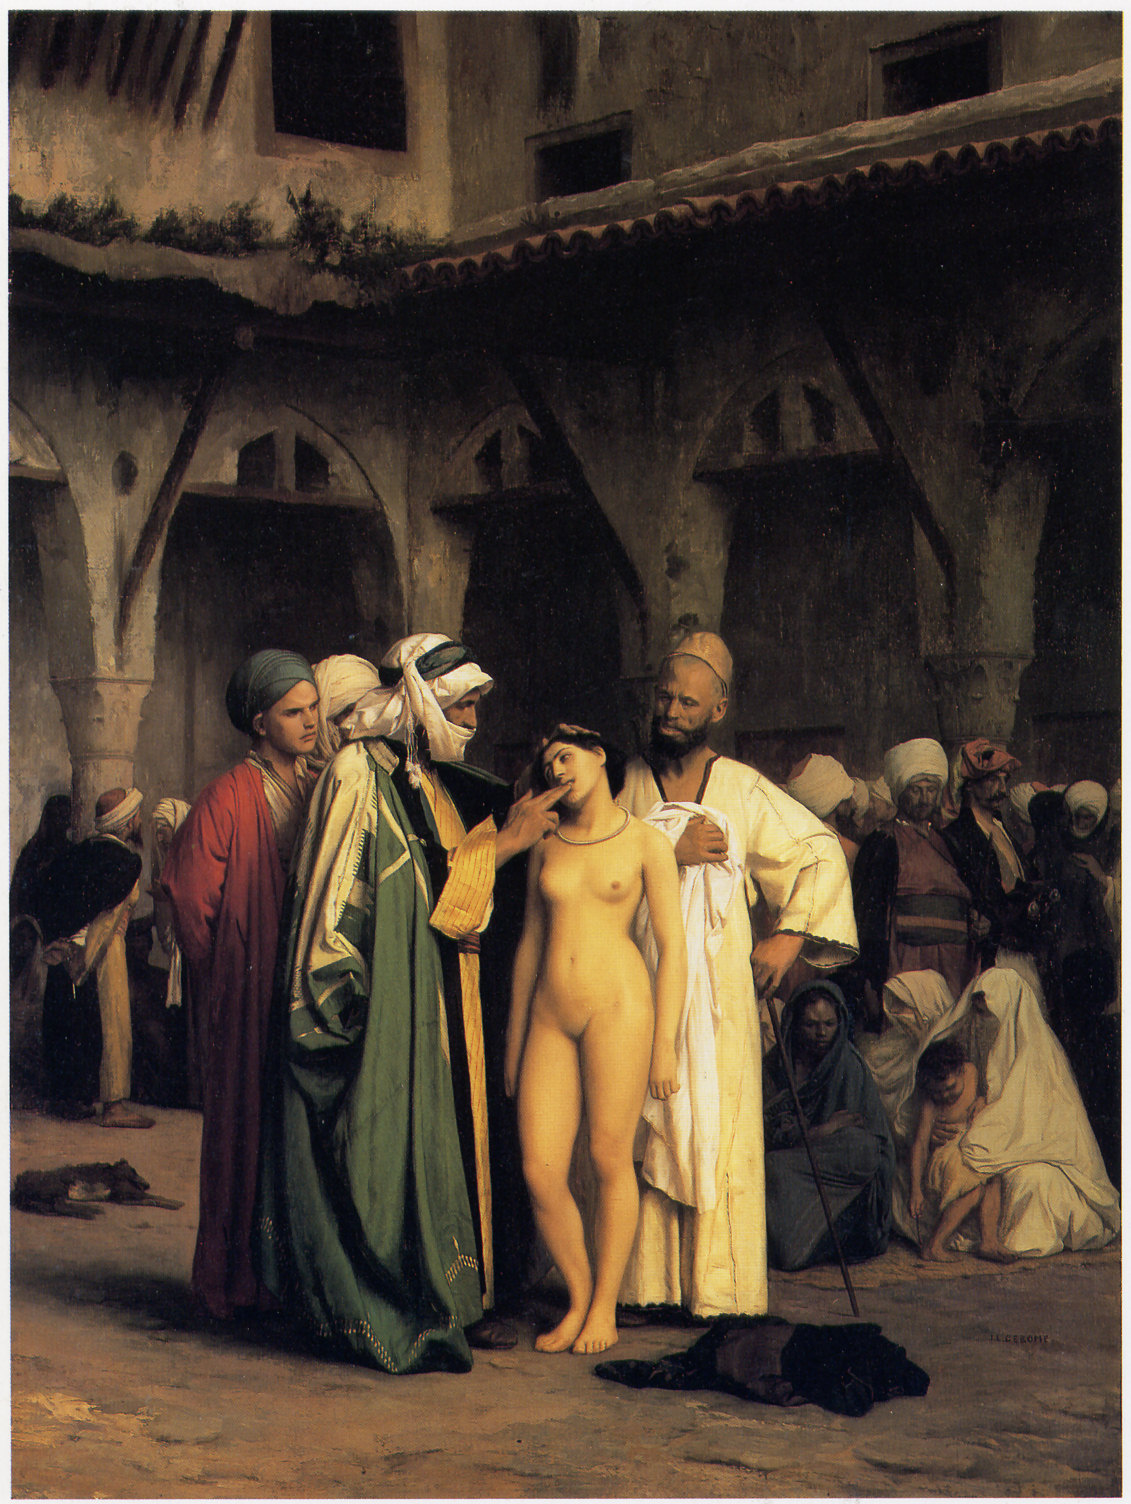 http://uploads8.wikipaintings.org/images/jean-leon-gerome/slave-market.jpg